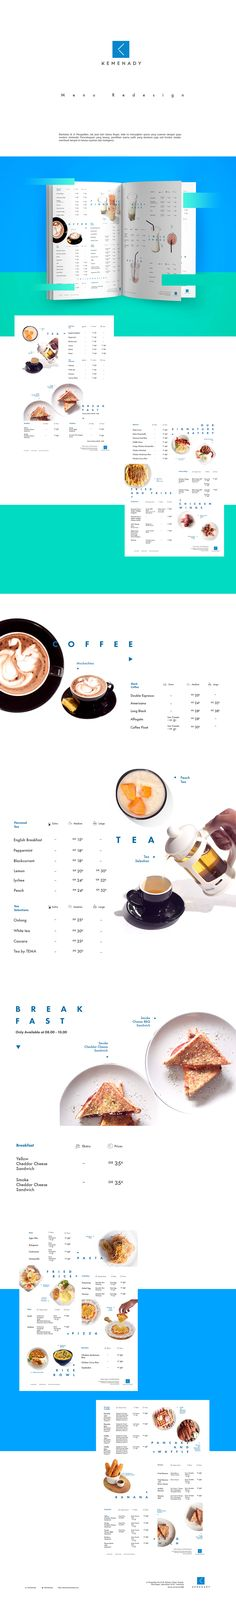 "Check out this @Behance project: ""KEMENADY - Coffe and Co-Working Space - Menu Redesign"" https://www.behance.net/gallery/58279999/KEMENADY-Coffe-and-Co-Working-Space-Menu-Redesign"